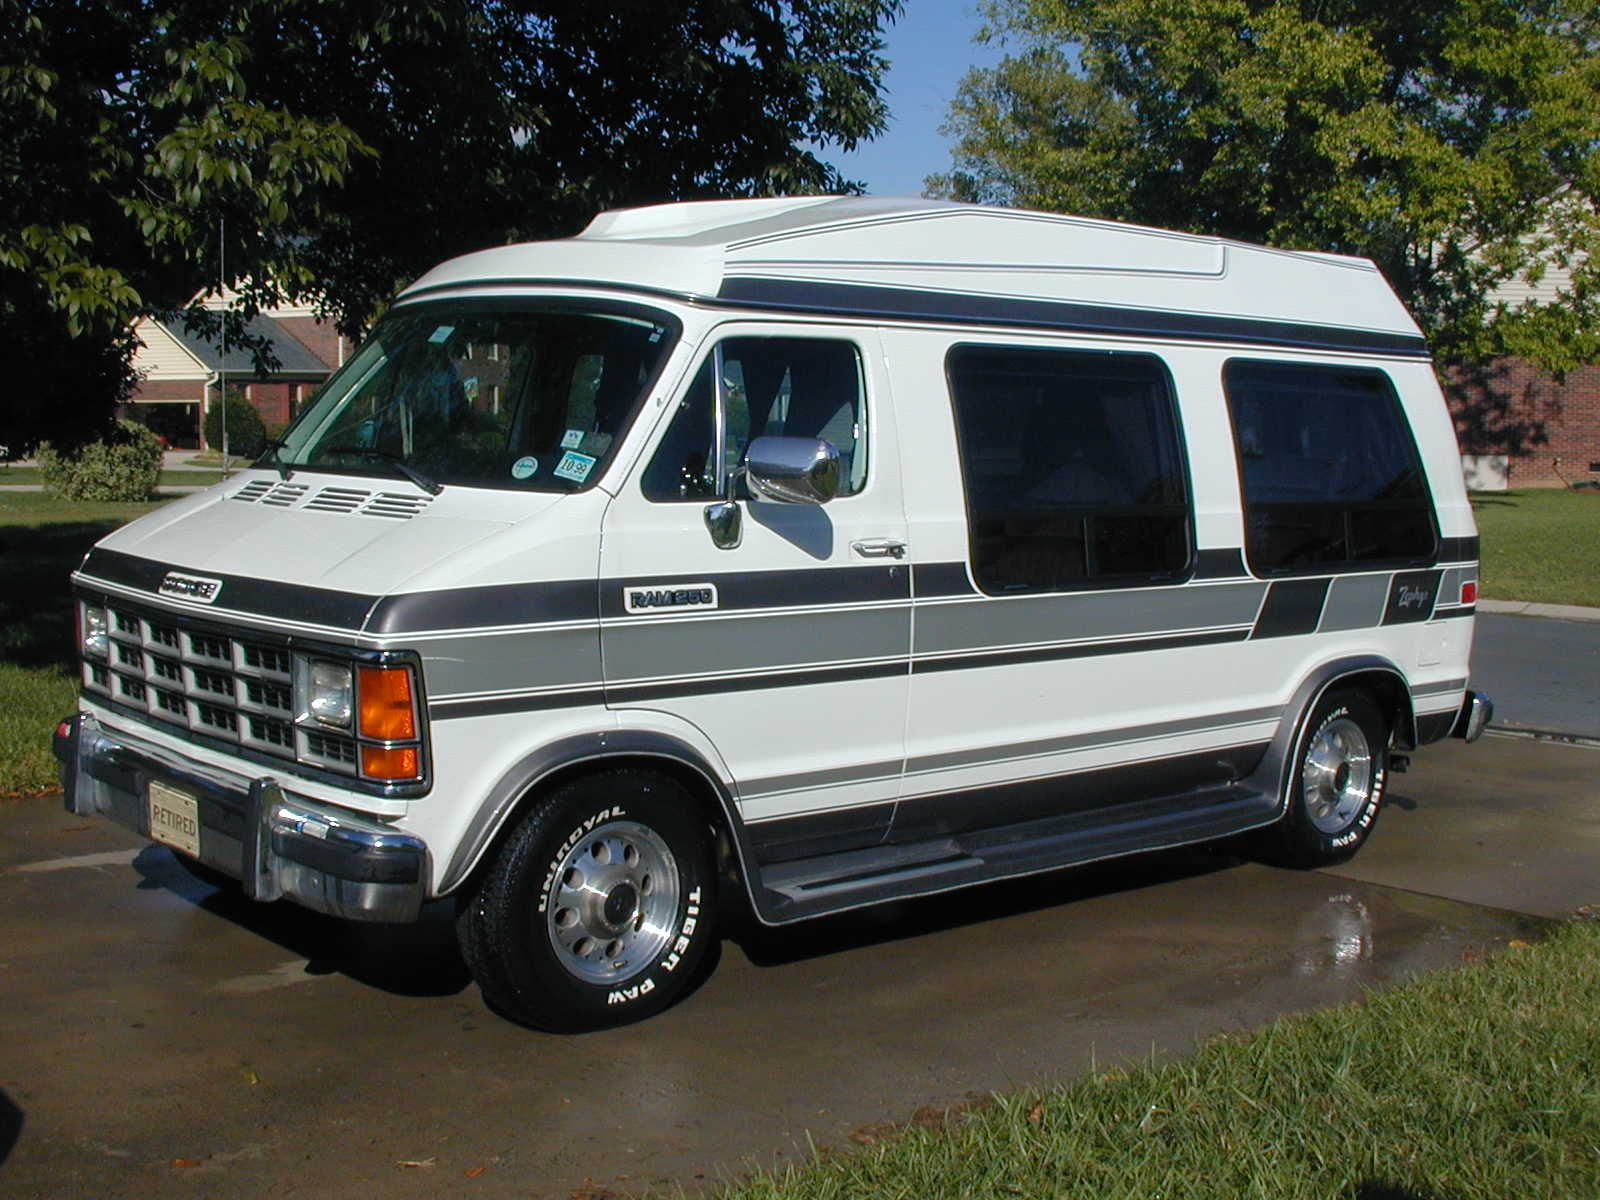 Picture of 1992 dodge ram van 3 dr cargo van exterior